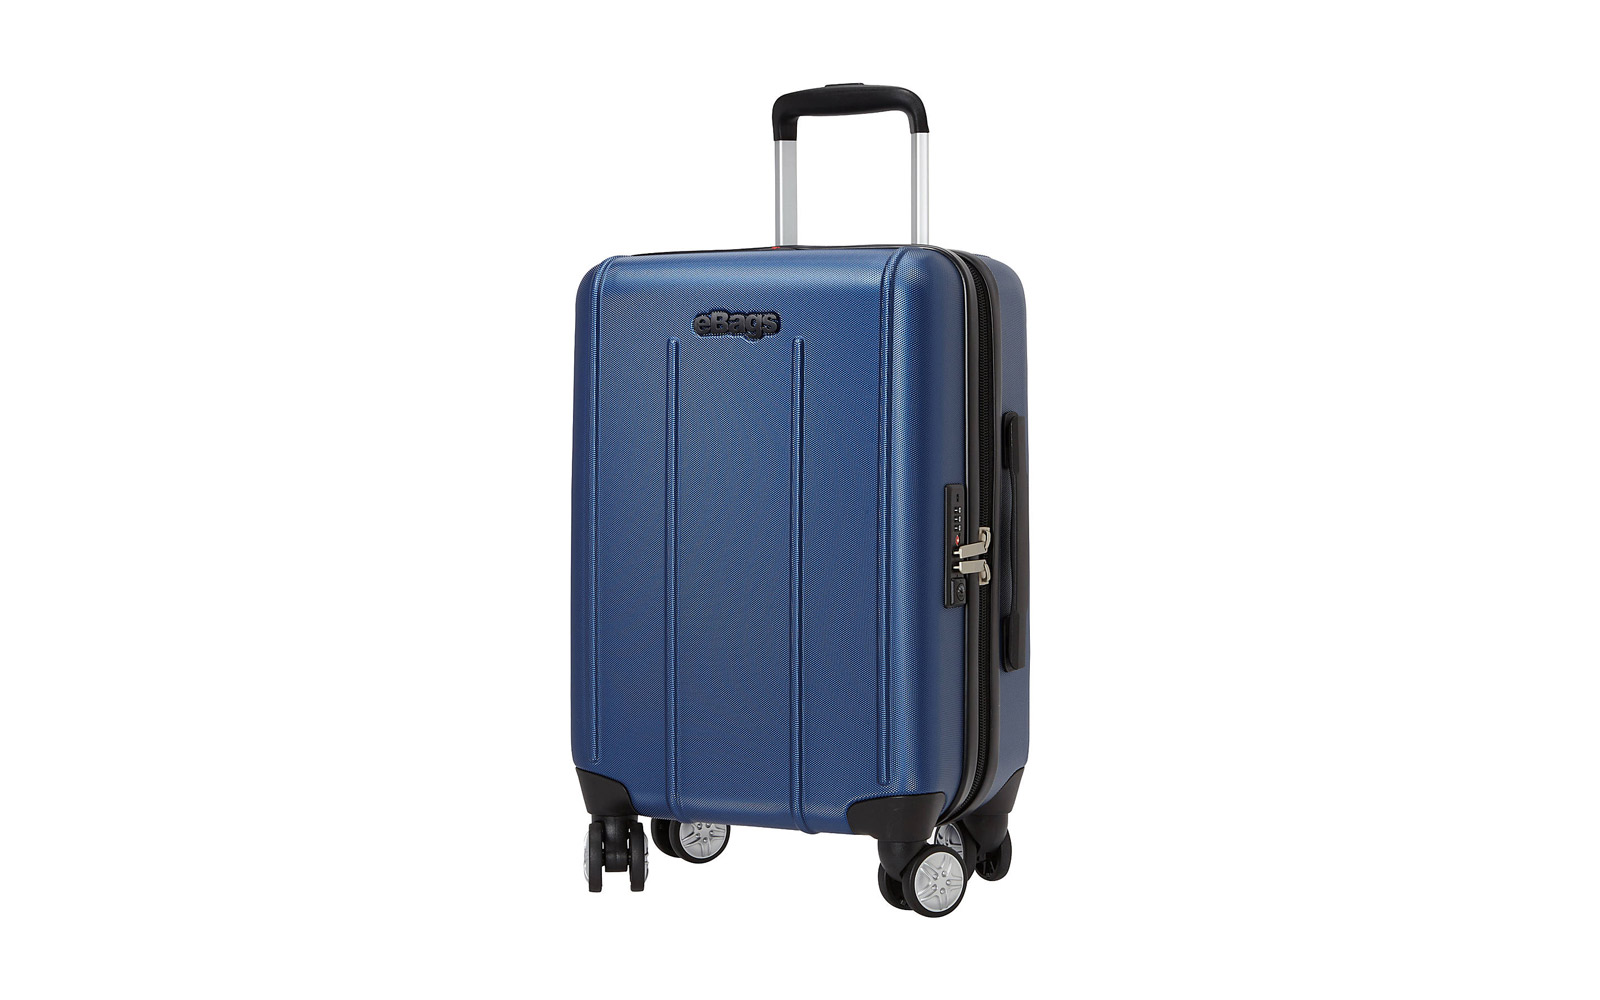 08f1fbdc56 A Carry-on Luggage Size Guide by Airline